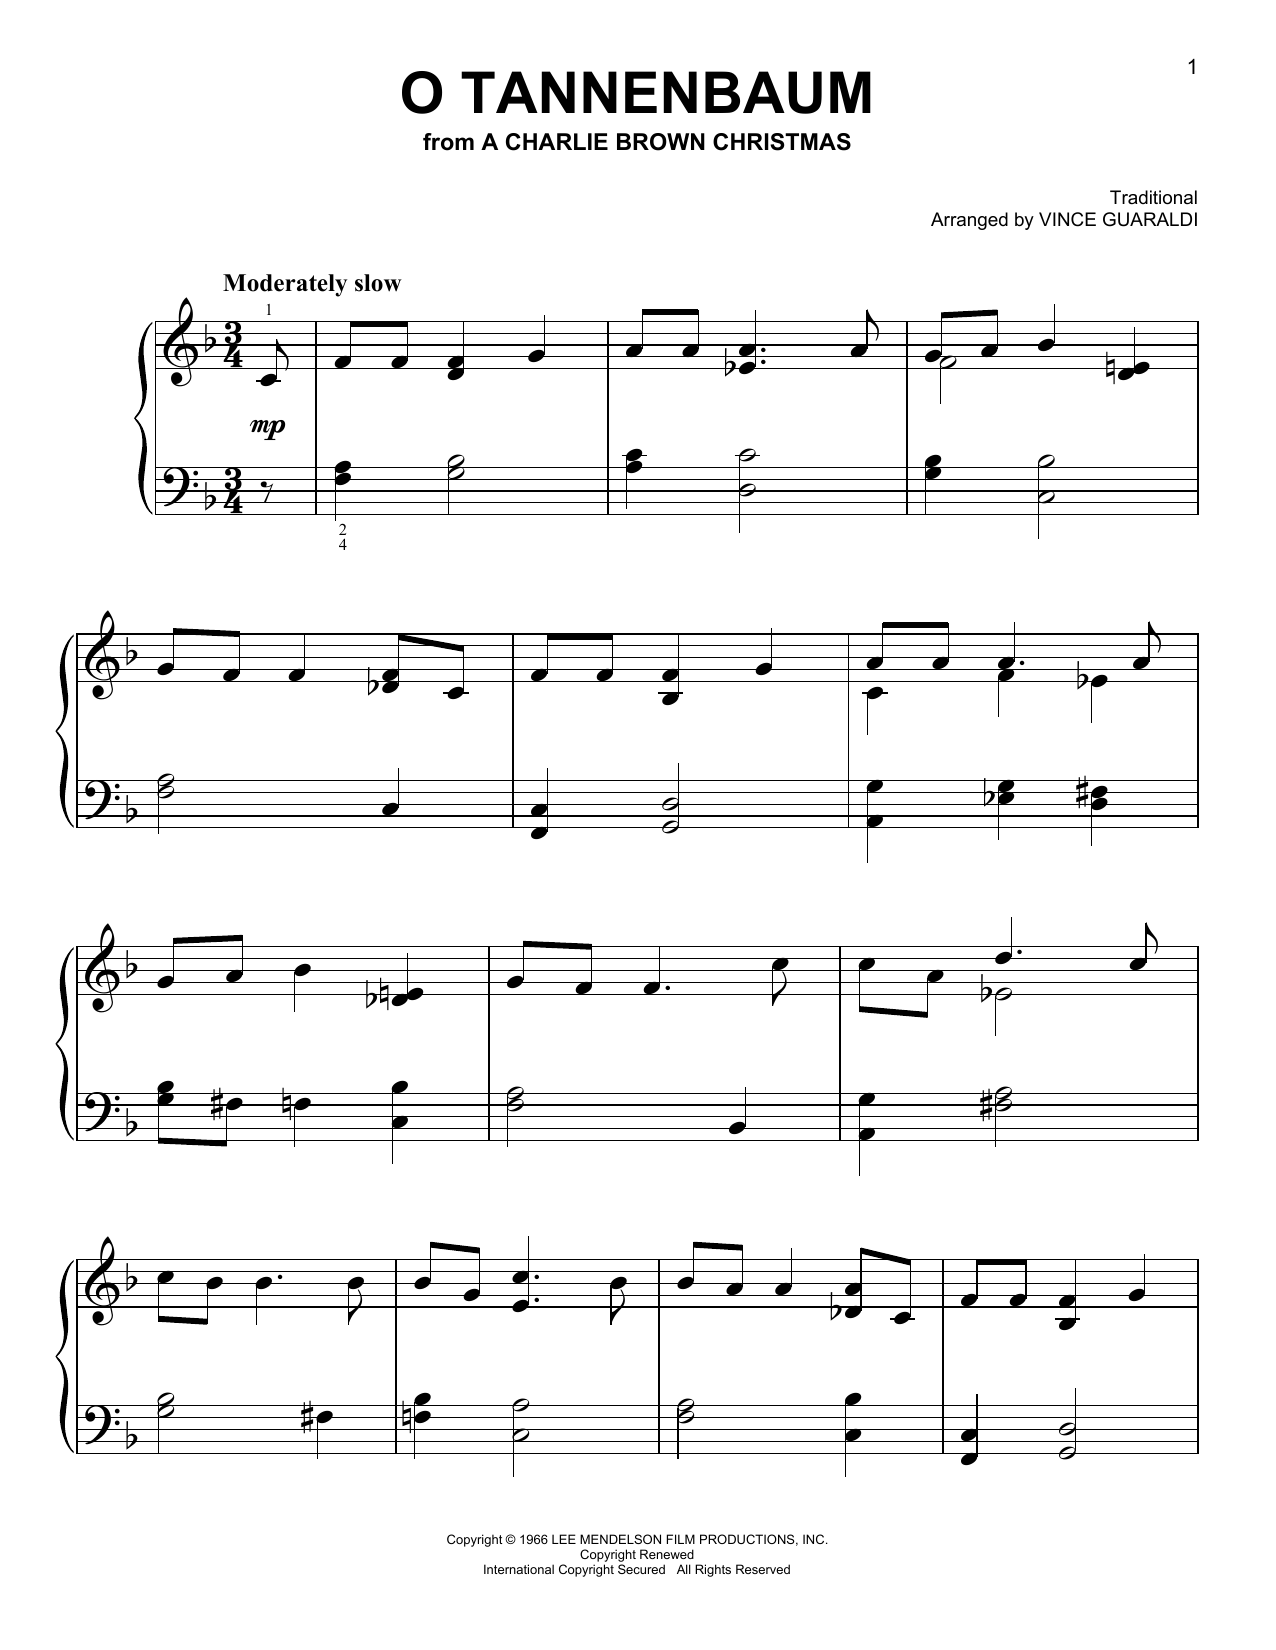 O tannenbaum sheet music